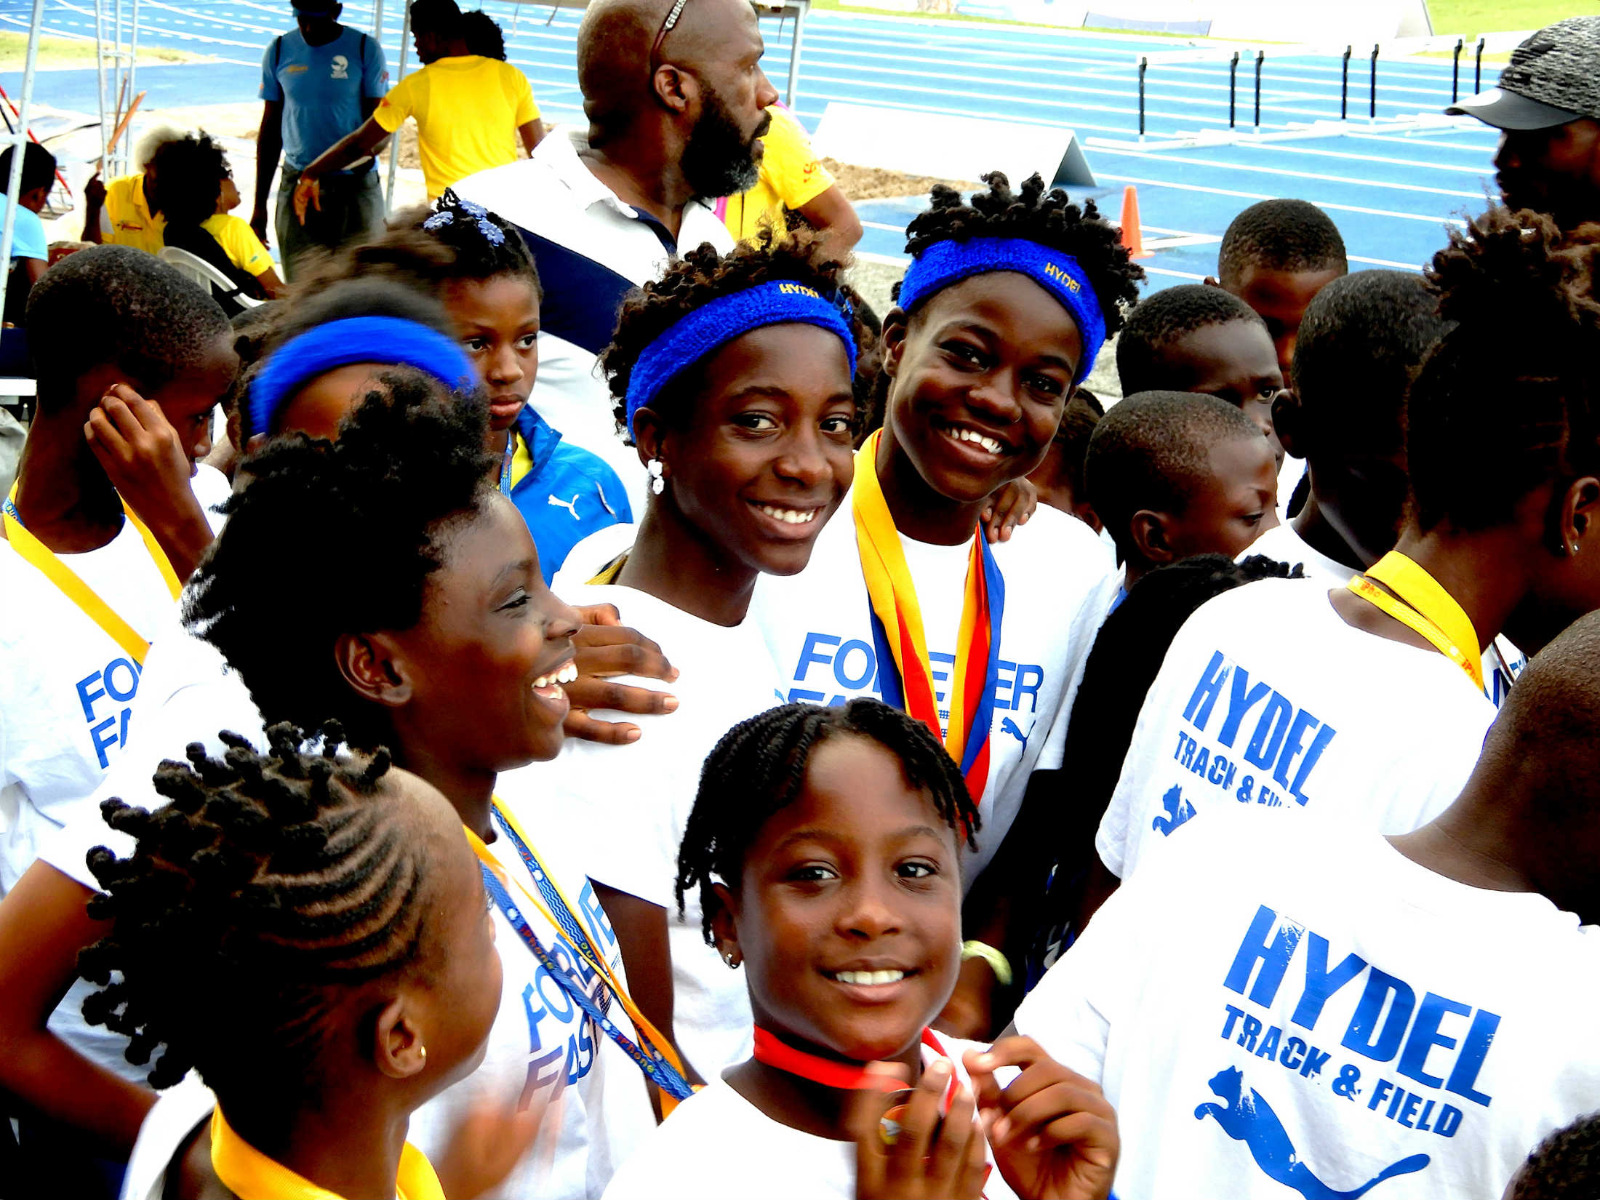 Fewer athletes on the track, fewer stories for journalists – consequences of coronavirus in the Jamaican sports community